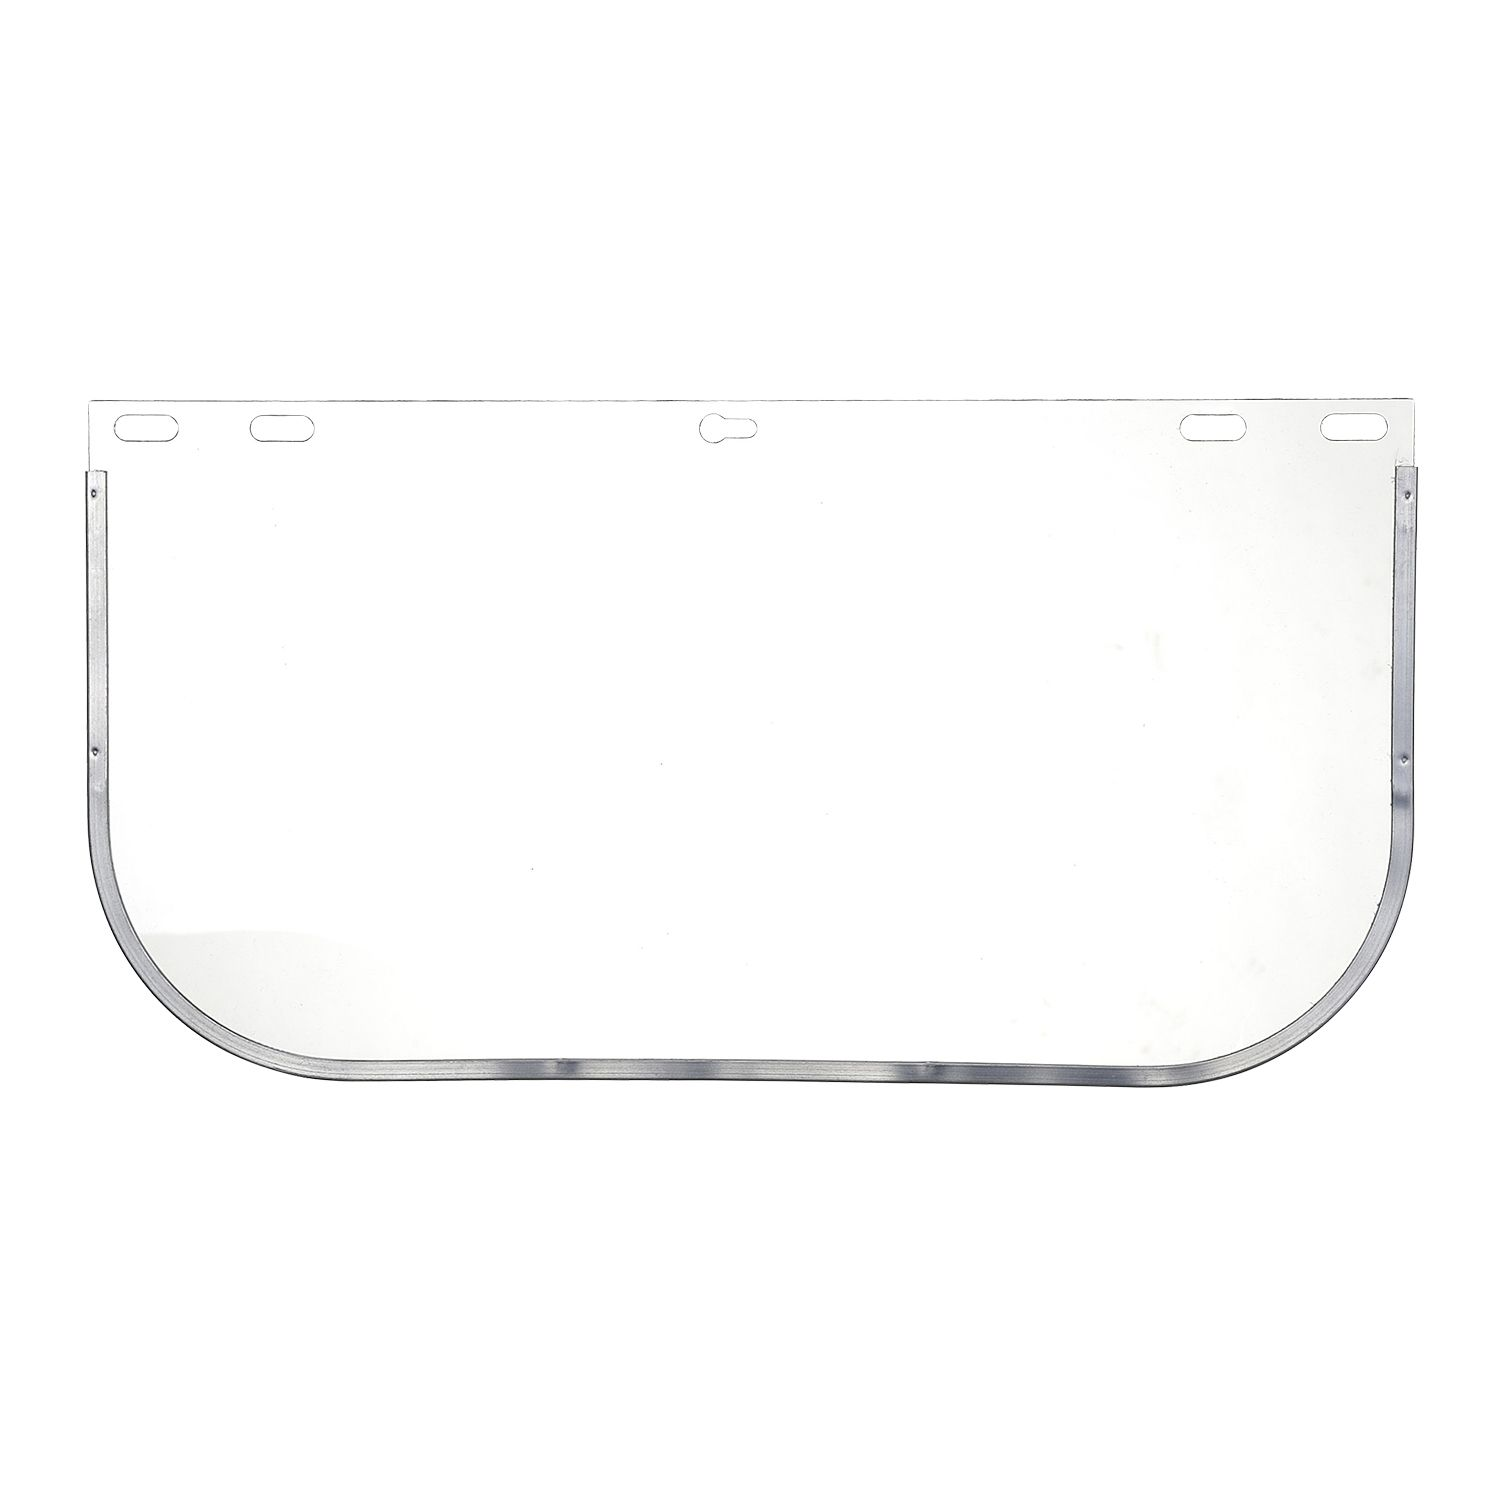 Portwest PW99 visor